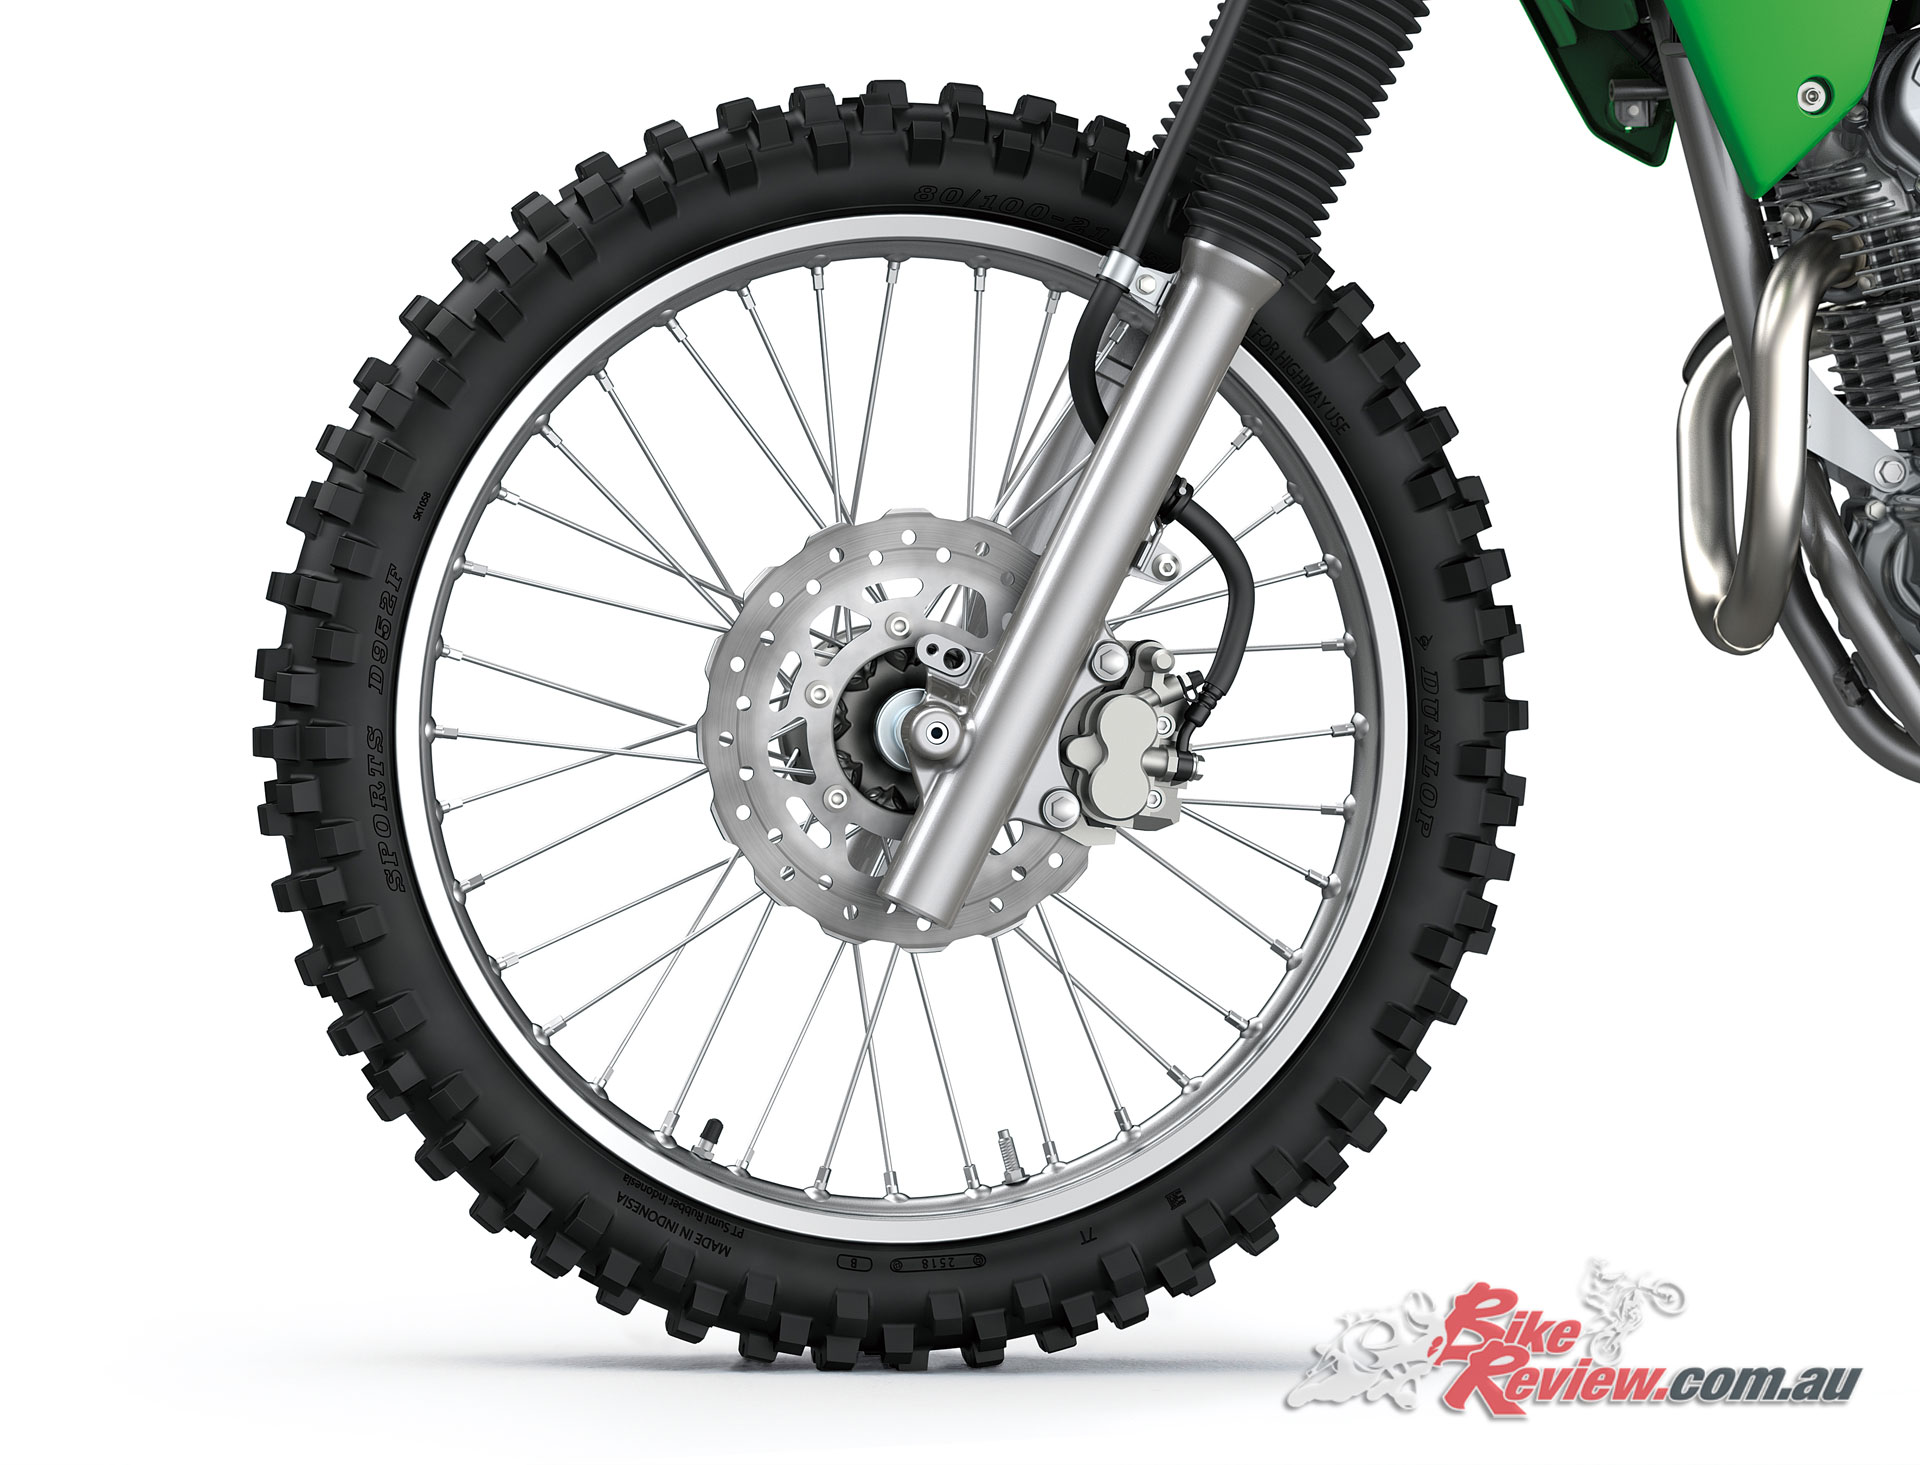 2020 Kawasaki KLX230R 21in front wheel with 240mm single rotor and dual piston caliper